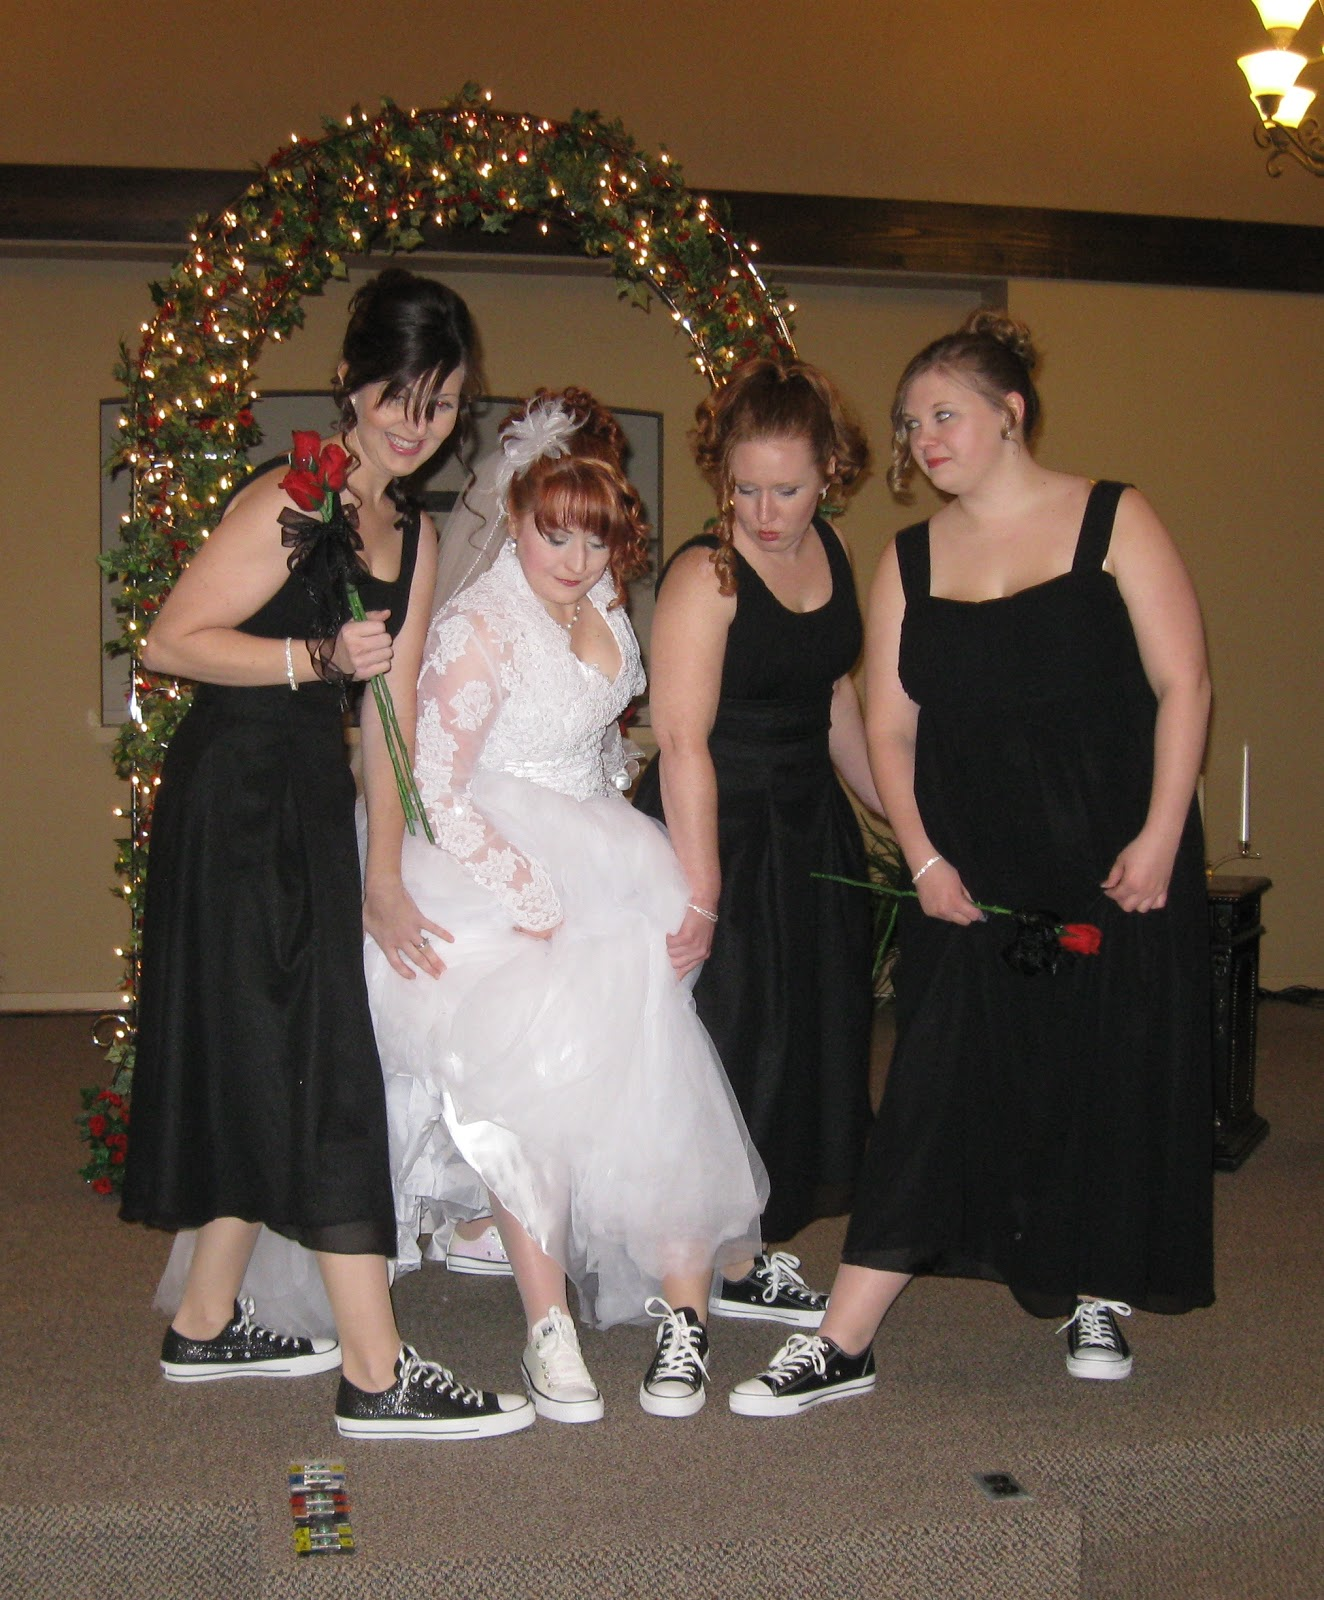 Five Beautiful Little Girls Dressed In Black White And Red The Ubiquitous Converse Foot Ware Took Care Of Rings Flowers Books